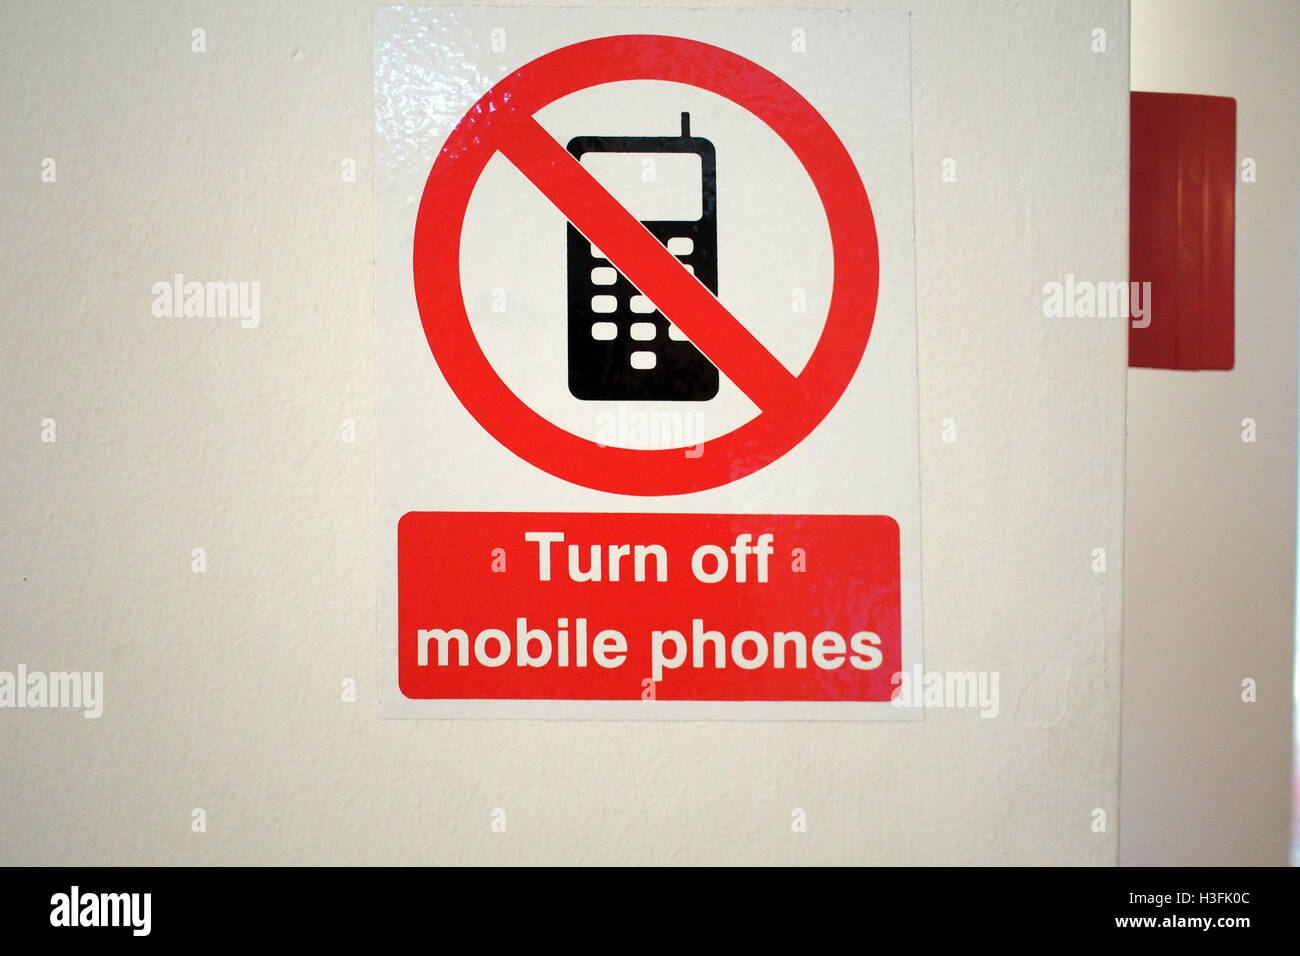 Turn off Mobile Phones prohibited warning sign - Stock Image